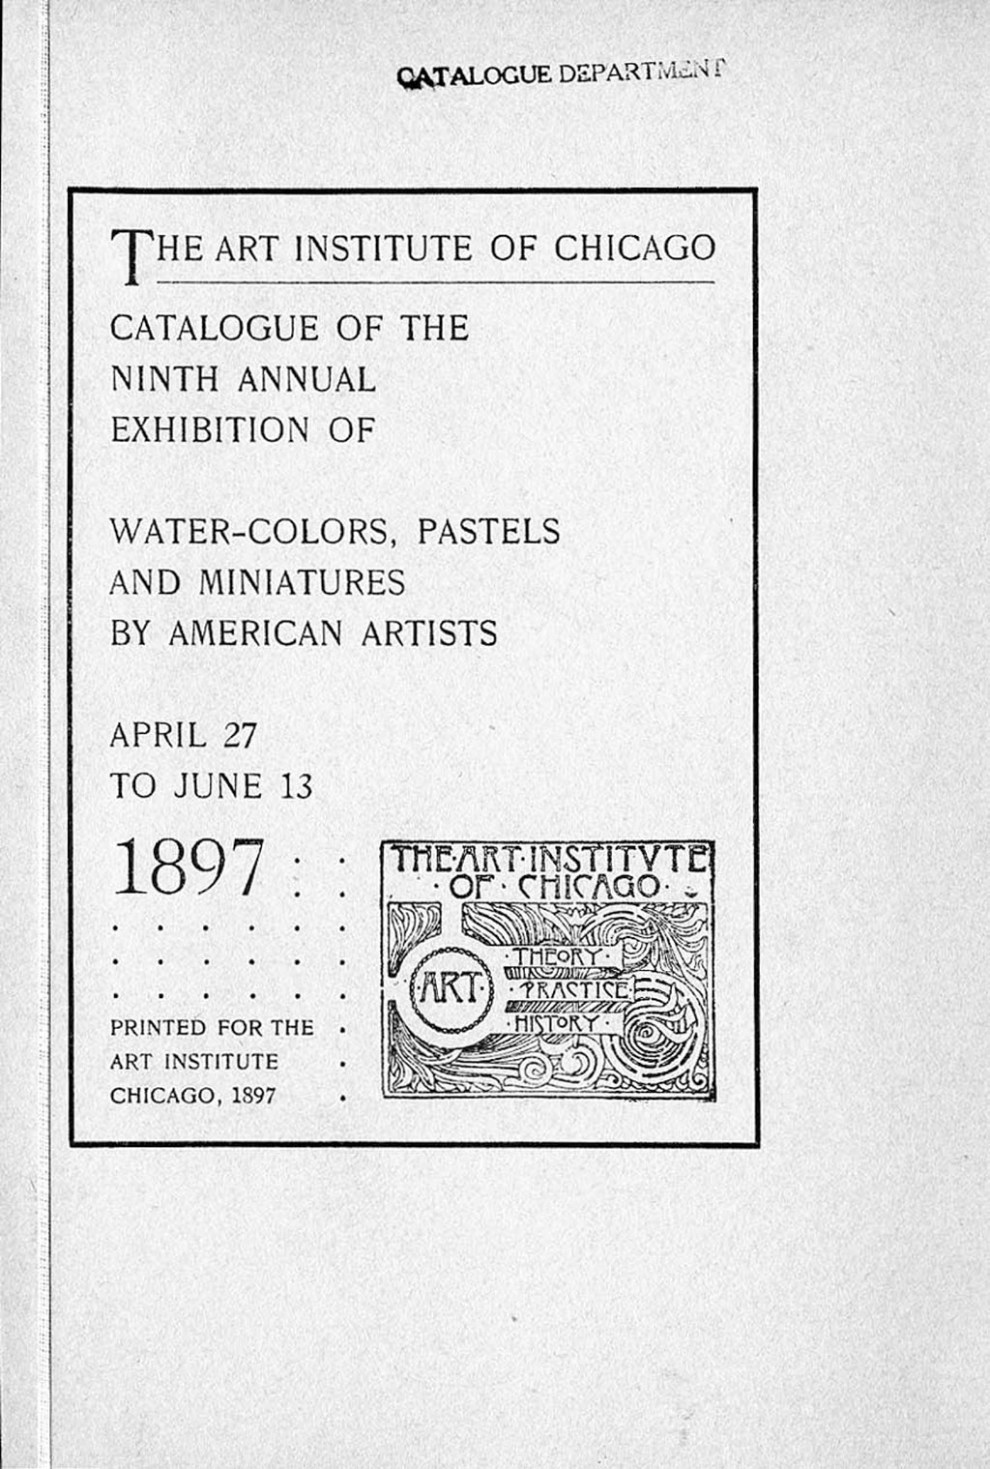 1897 The Art Institute of Chicago, Ninth Annual Exhibition of Water-colors, Pastels and Miniatures by American Artists, April 27-June 13